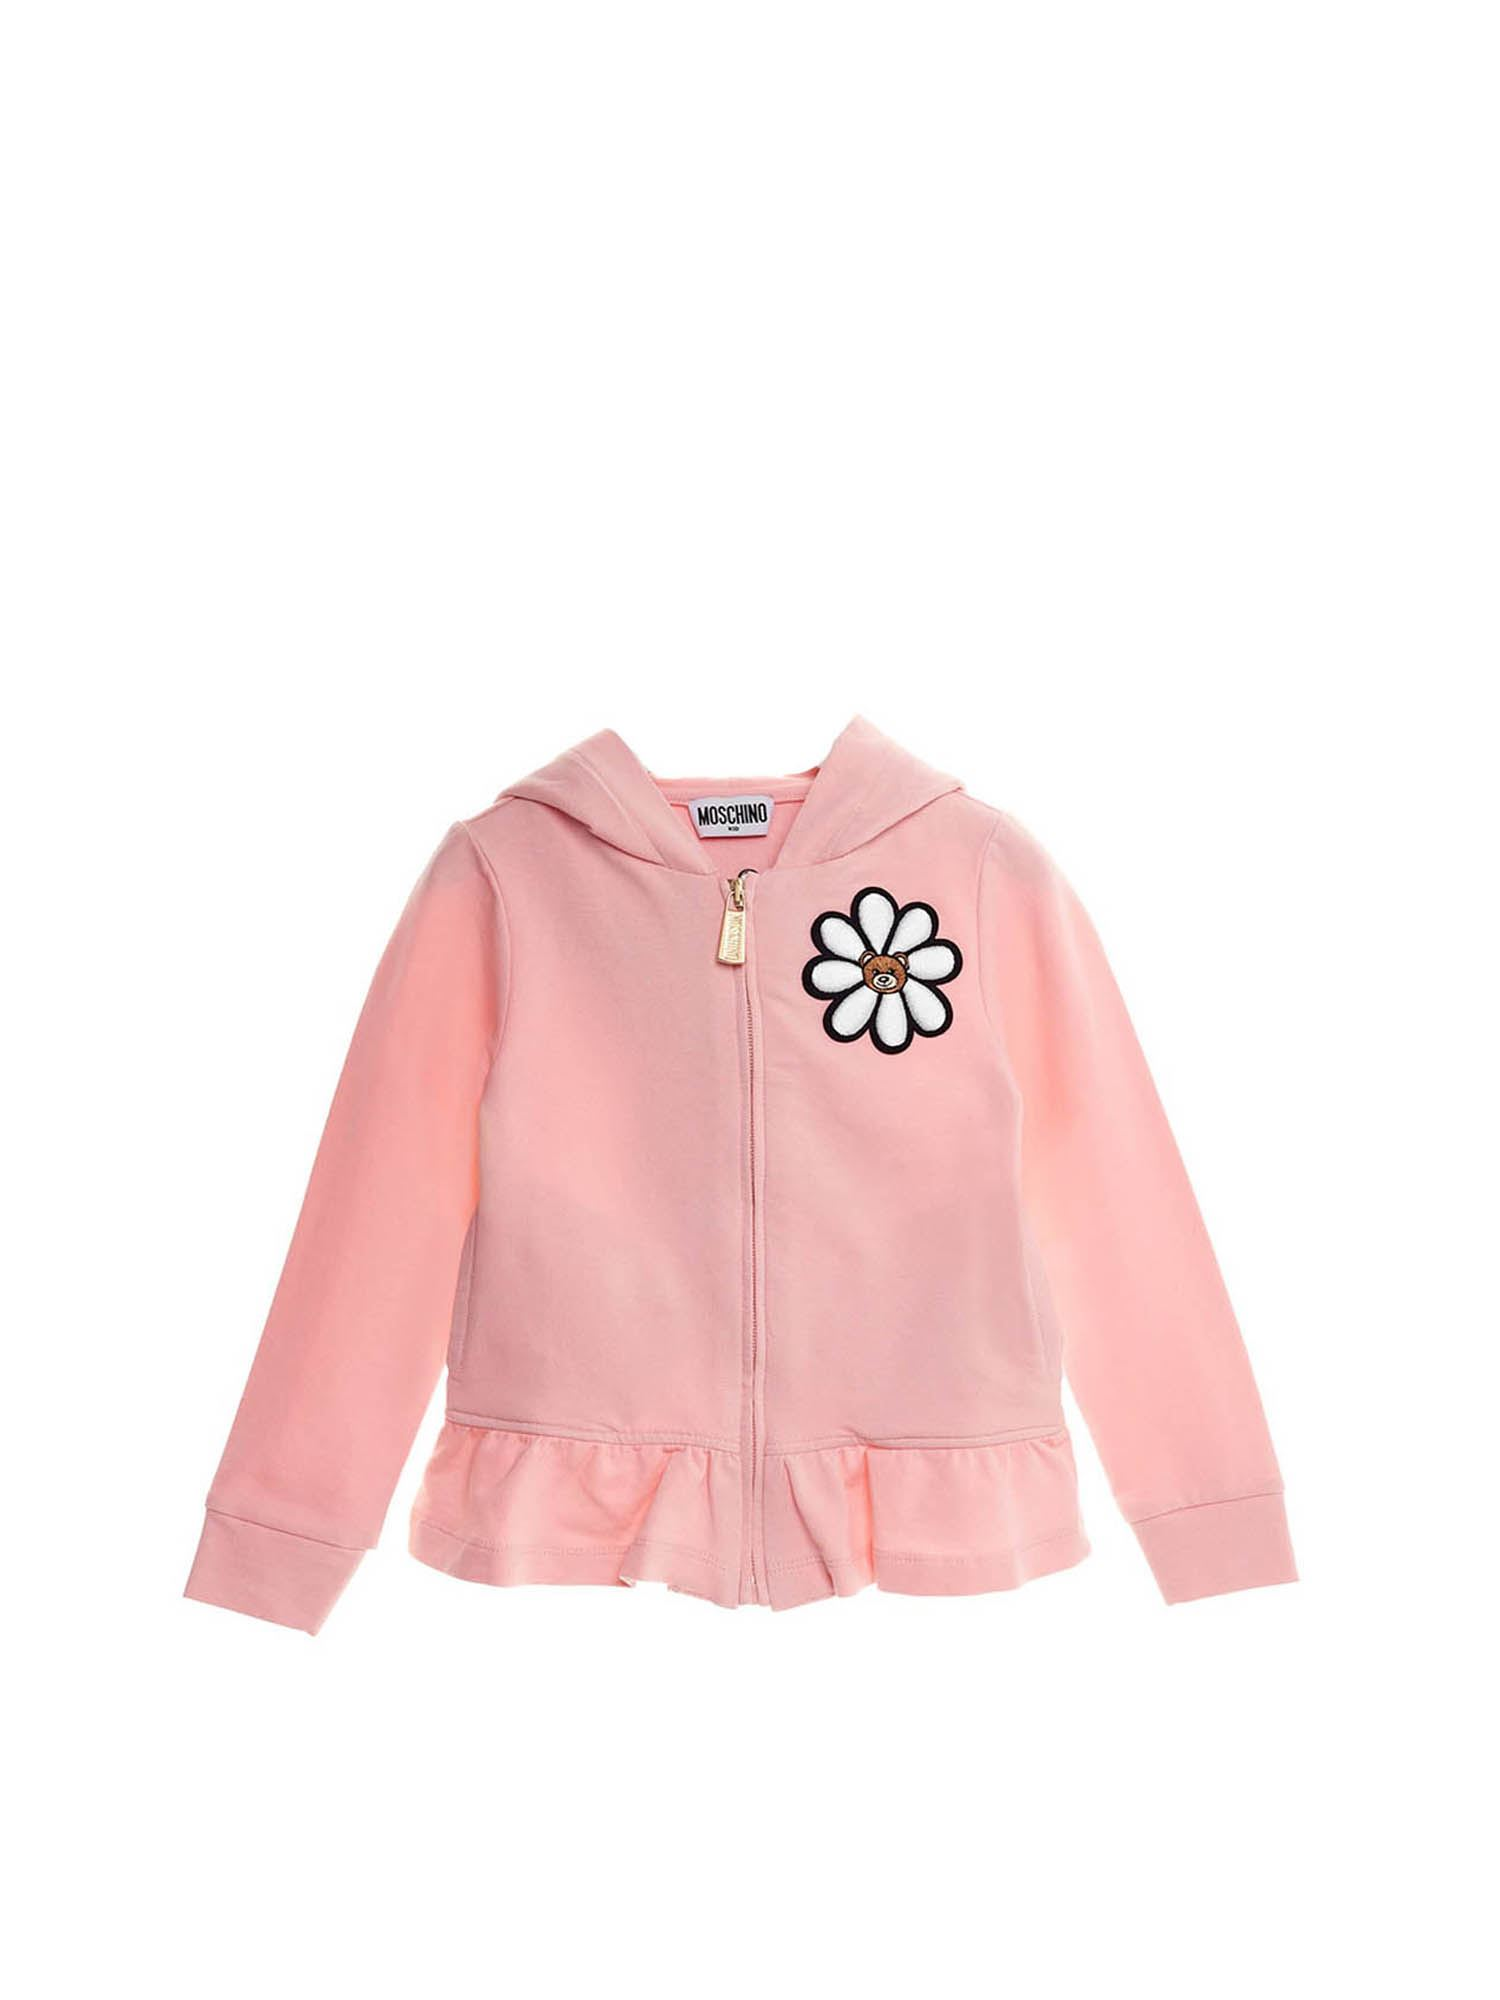 Moschino ZIPPED AND HOODED DAISY SWEATSHIRT IN PINK